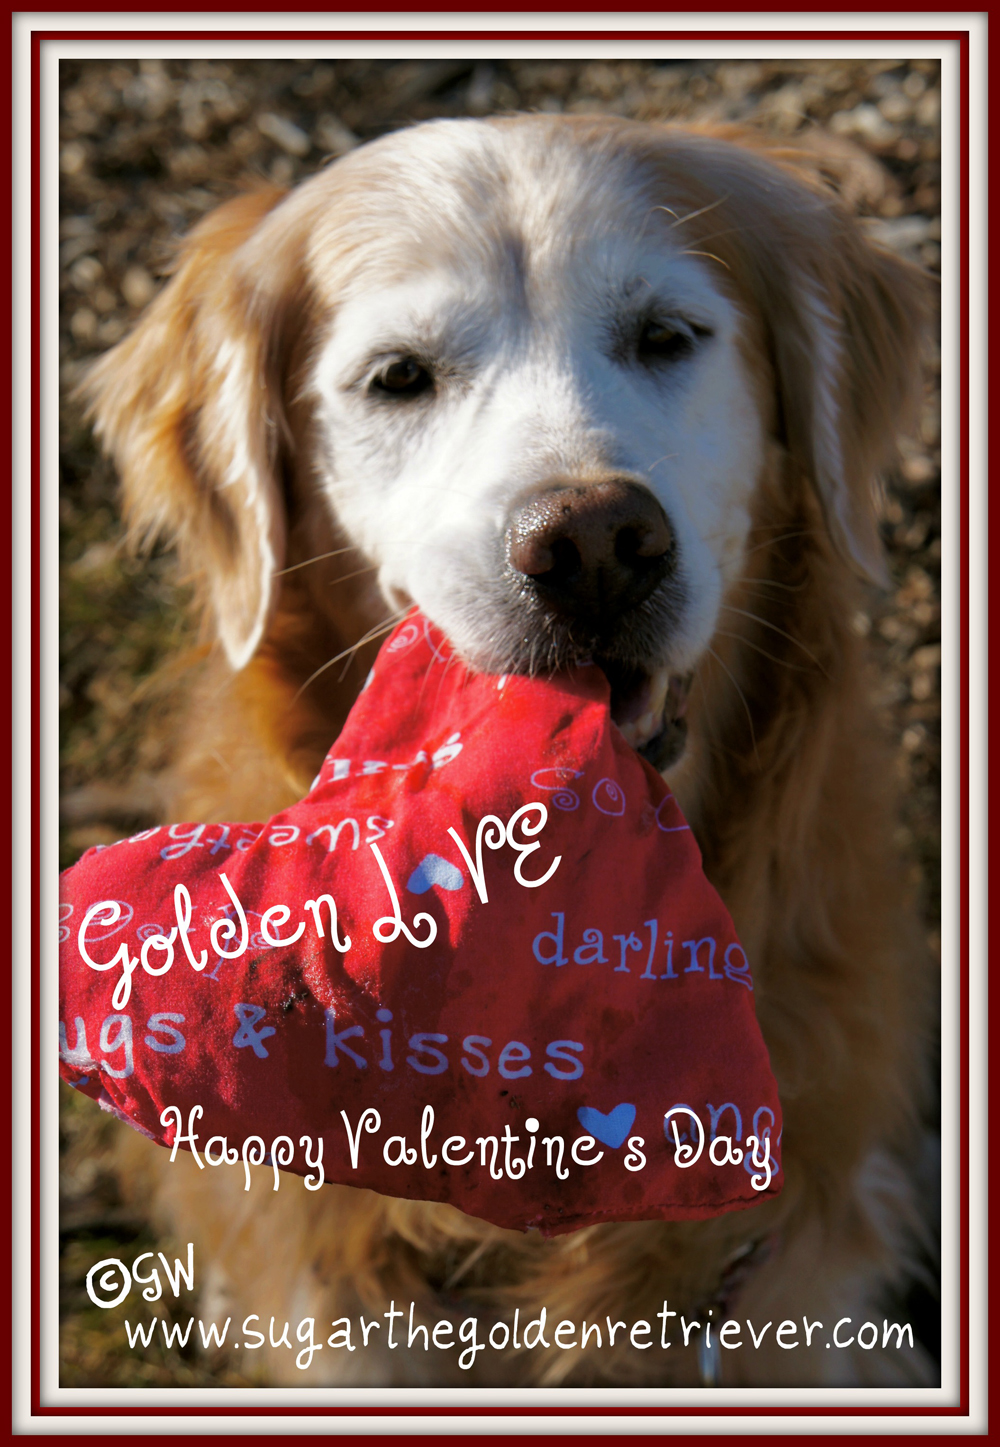 Sugar's Valentine's Day Greeting